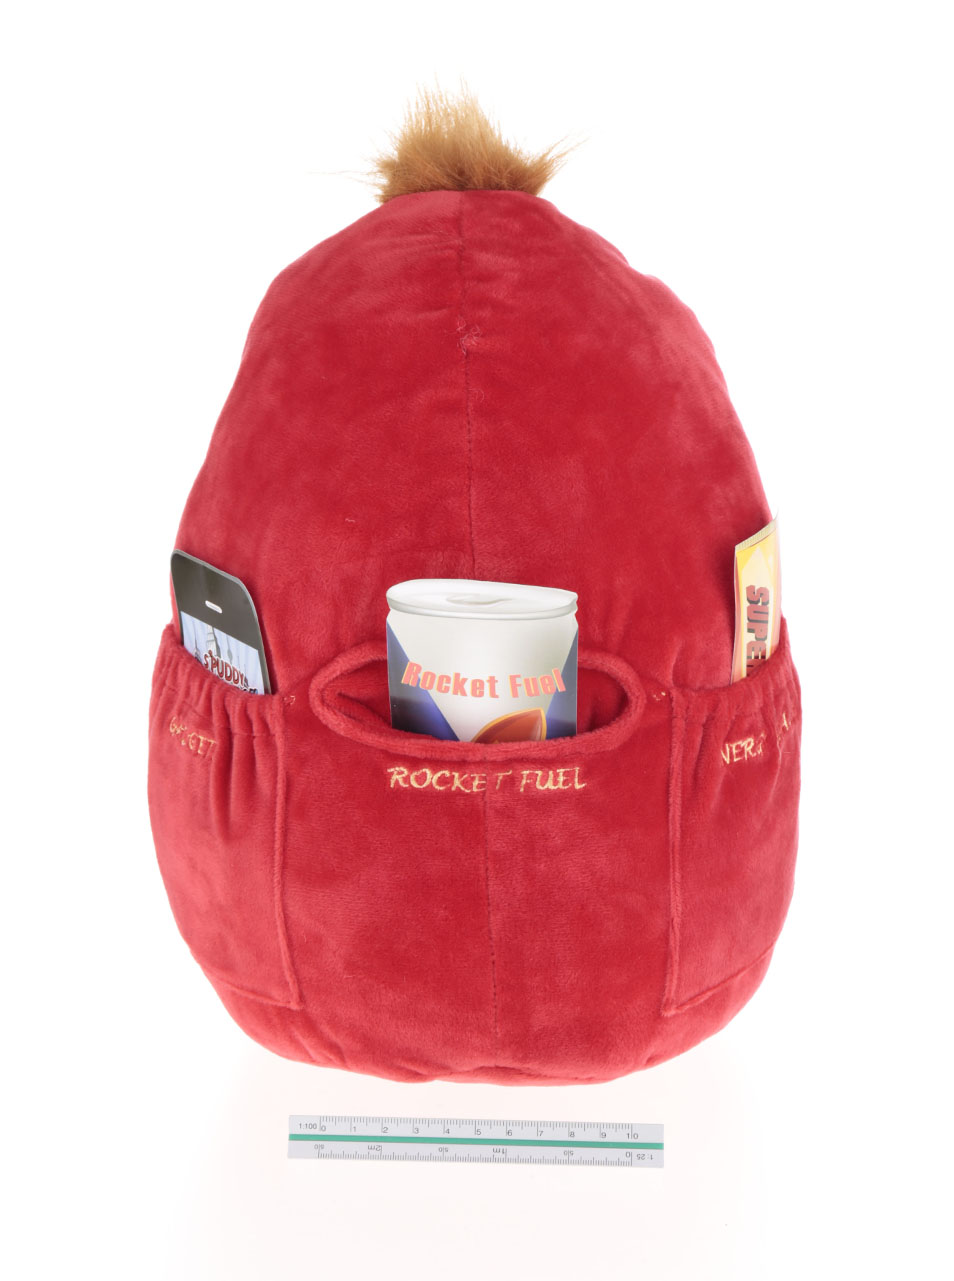 Spuddy-Sofa-Car-TV-Remote-Beer-Snack-Cushion-